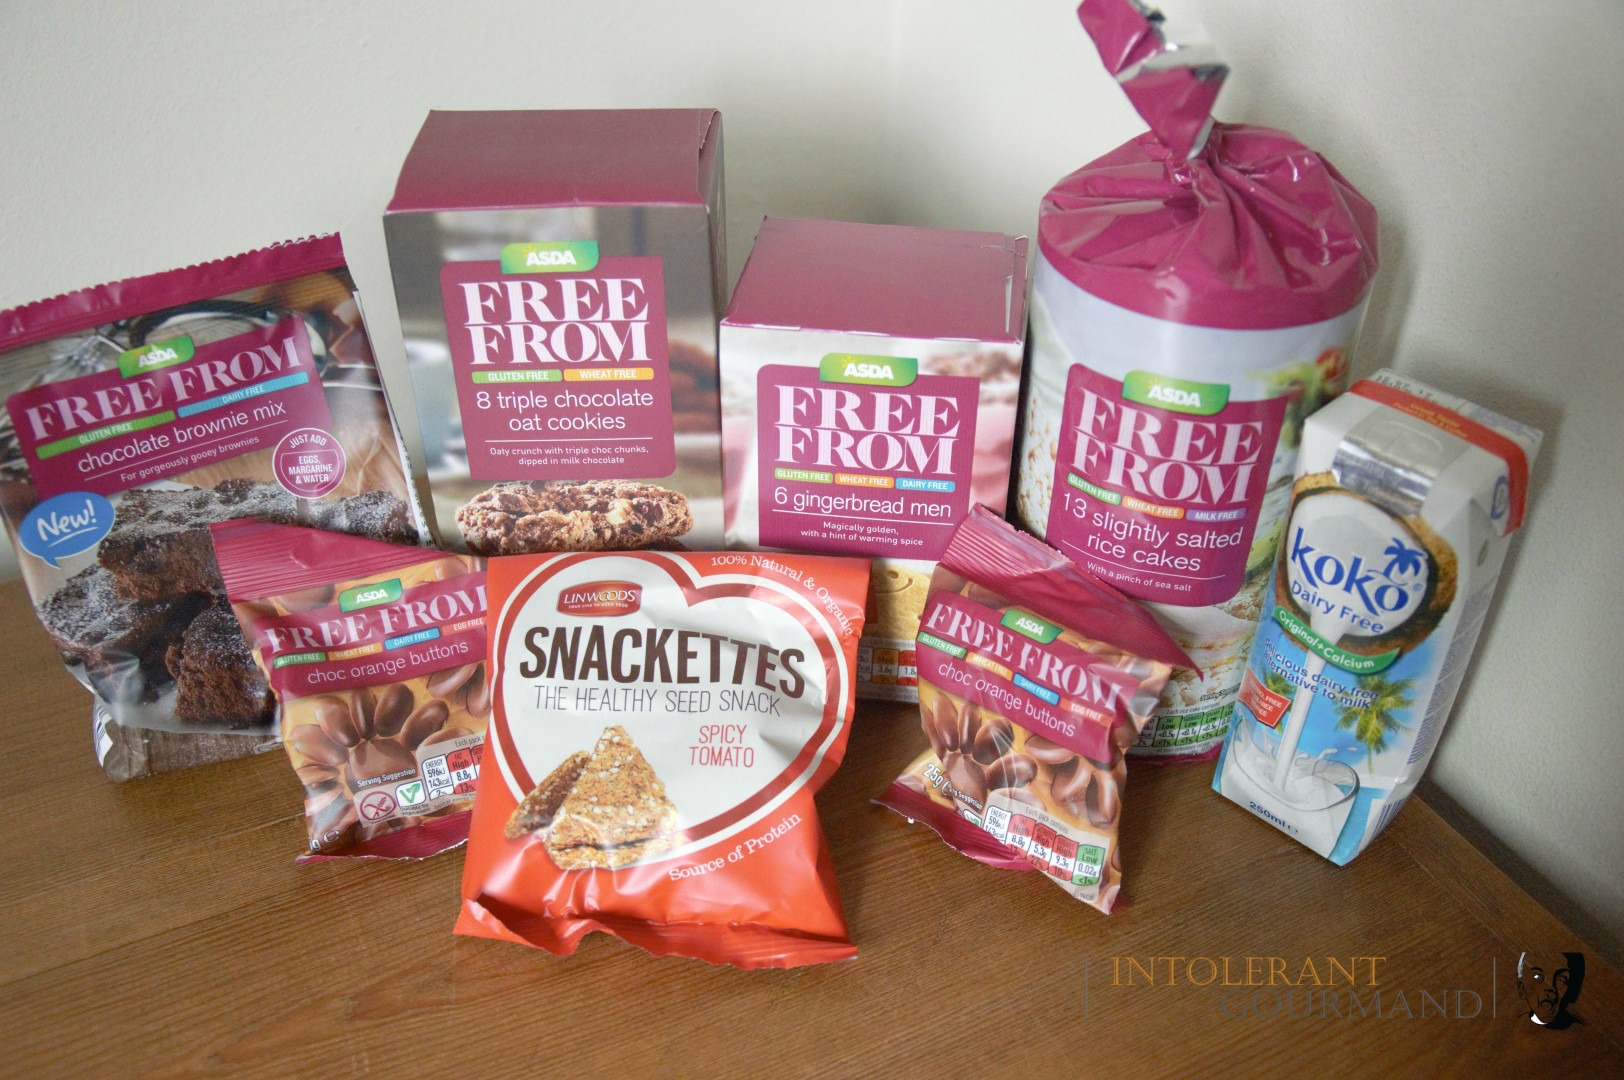 Asda Free From Rice Cakes